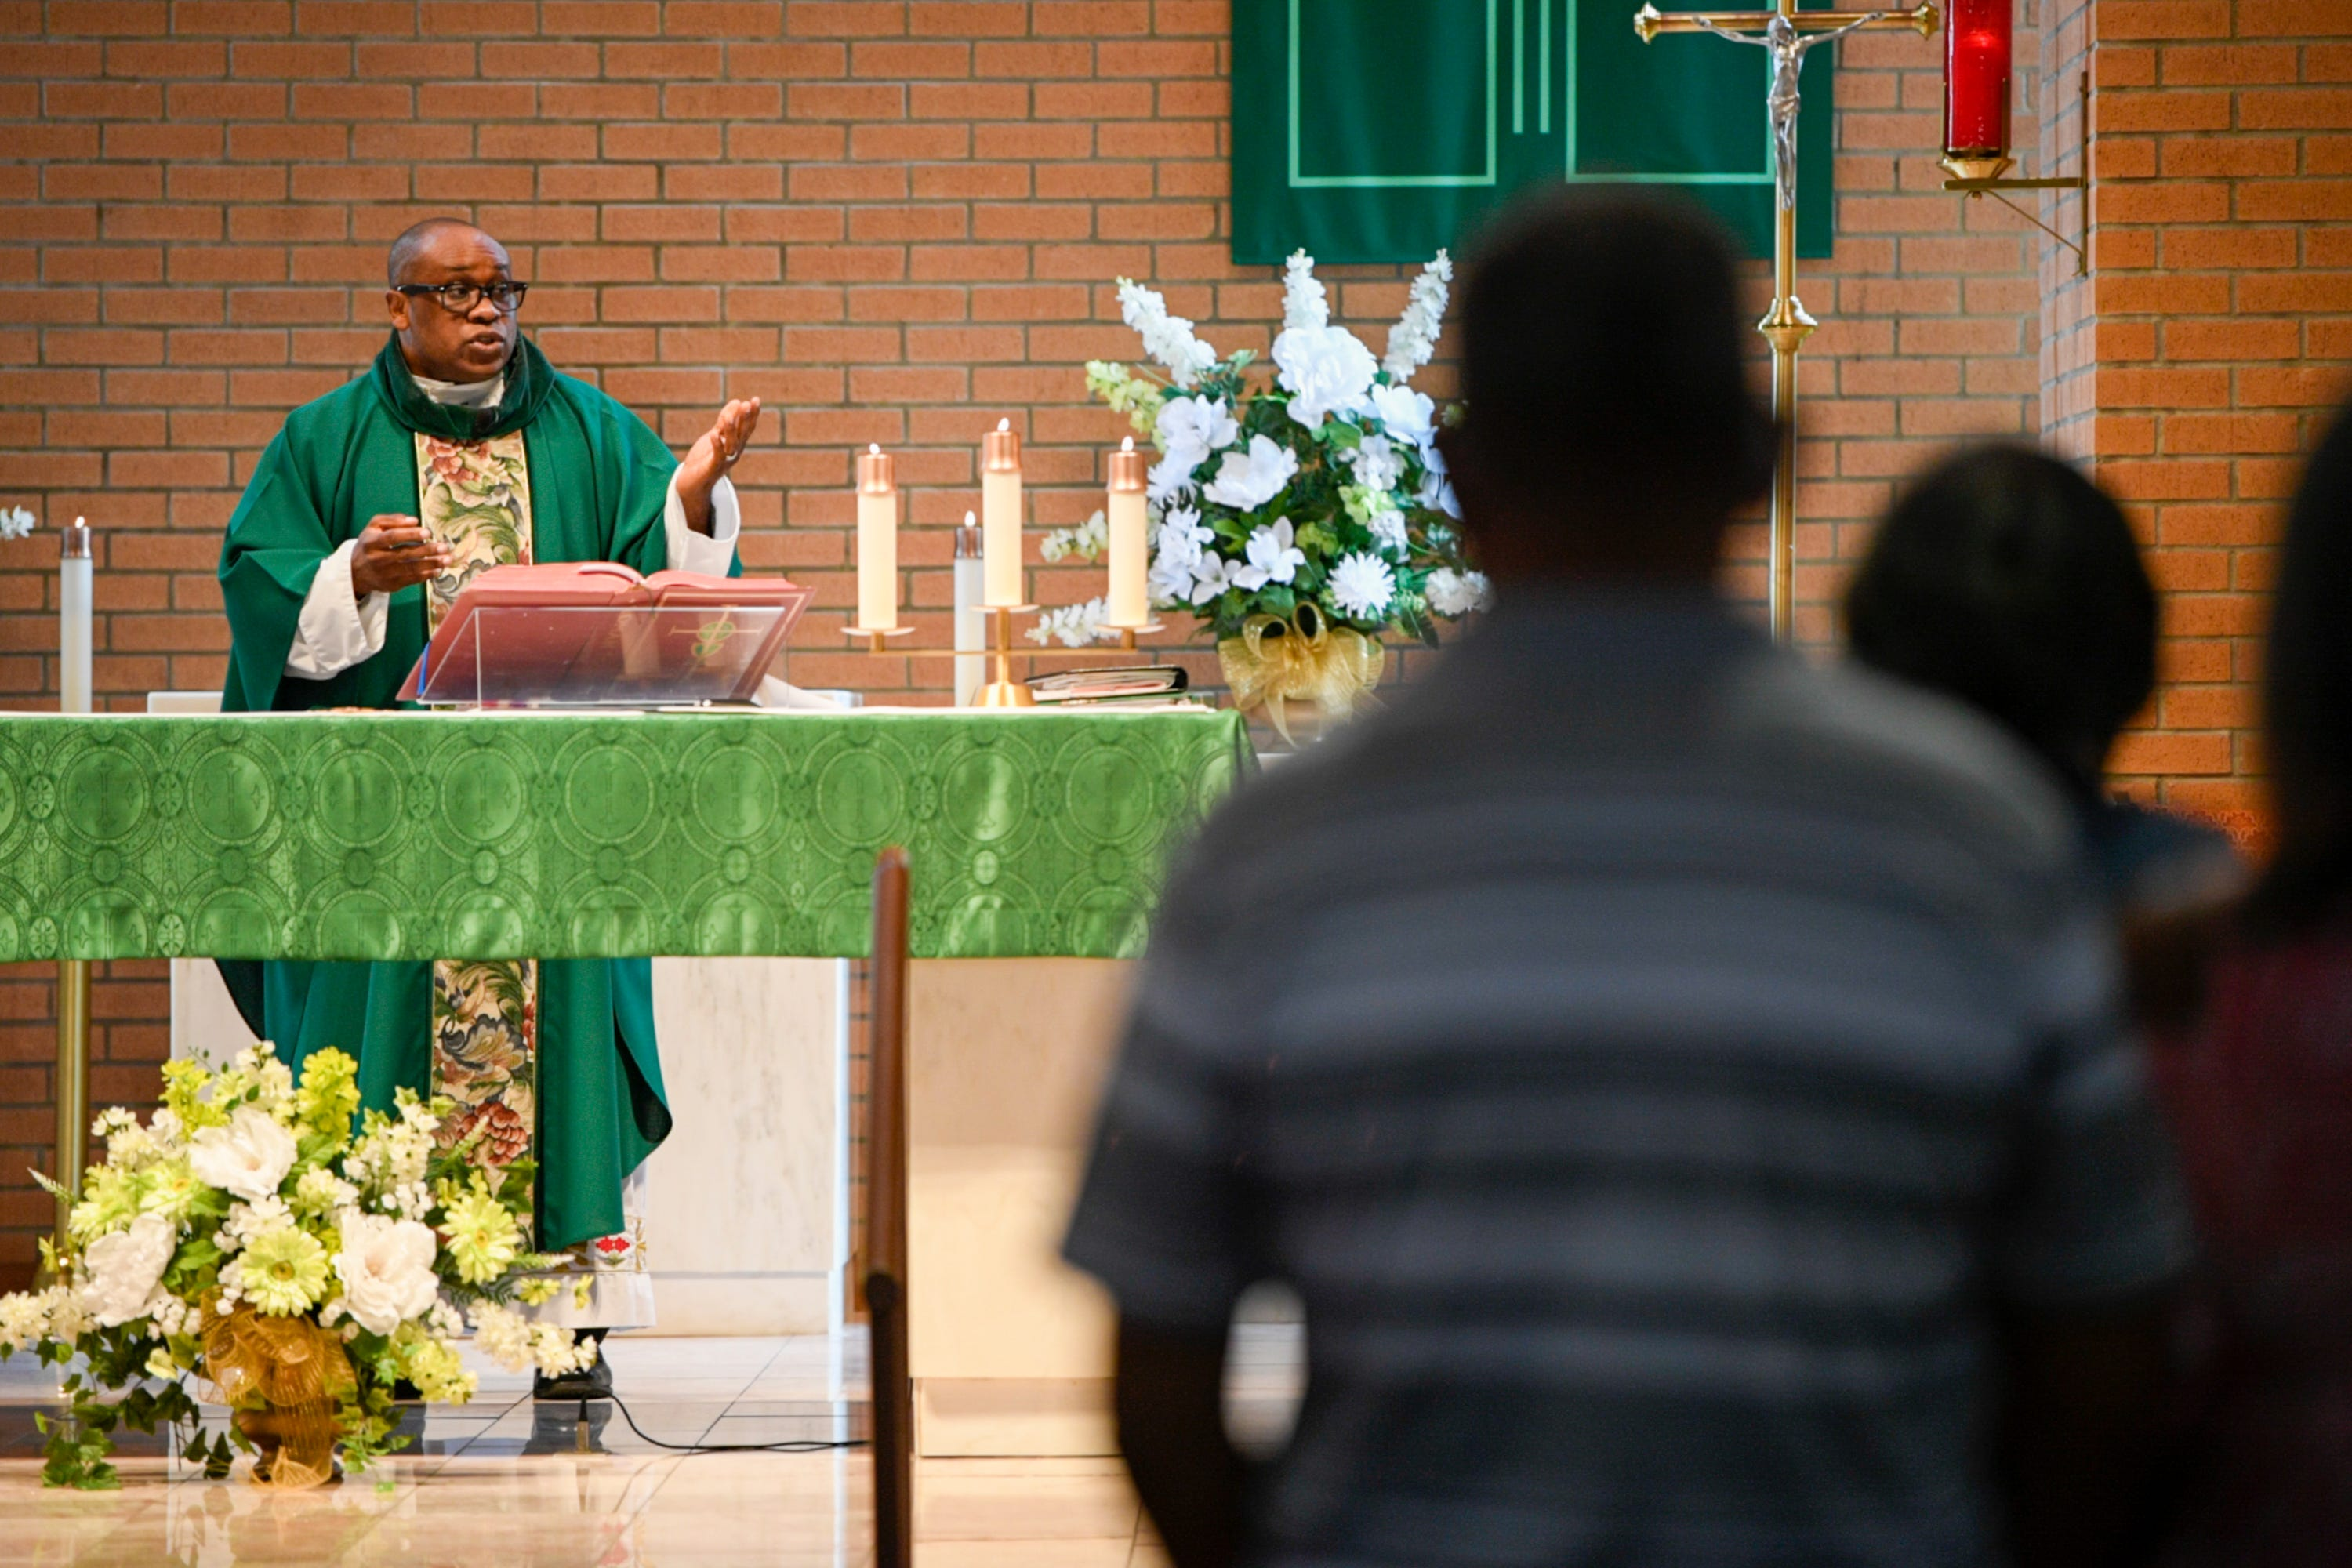 Parishioners stand in Our Lady of Grace Catholic Church in Reserve, La., during a sermon by the Rev. Fr. Christopher Chike Amadi.